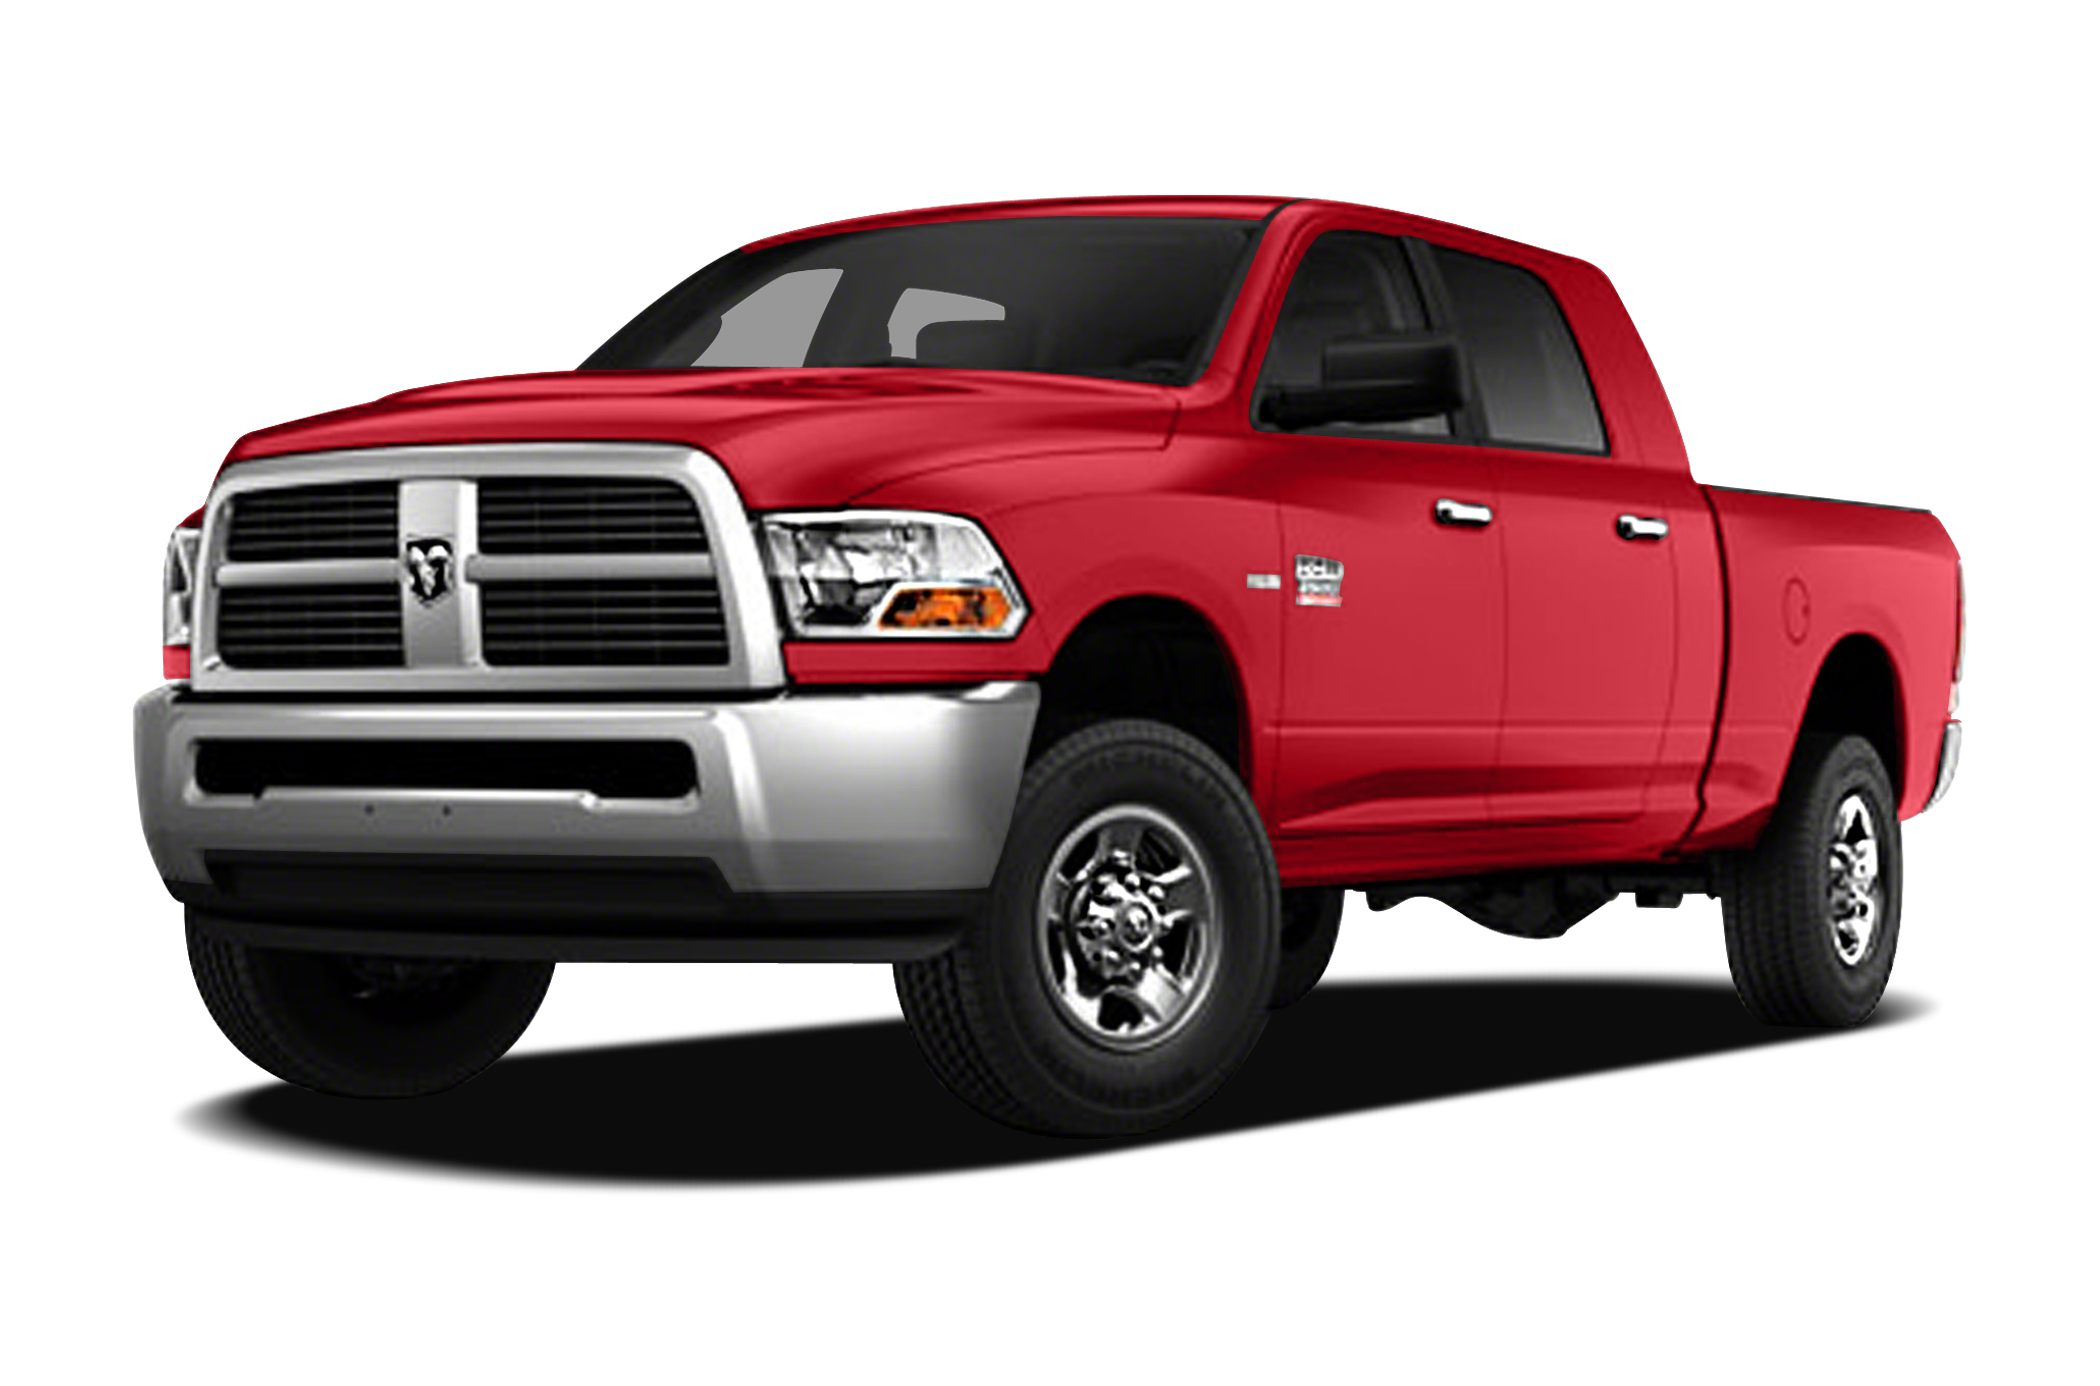 2012 RAM 2500 Laramie At Mullinax there are NO DEALER FEES That SAVES you 800 over our largest c